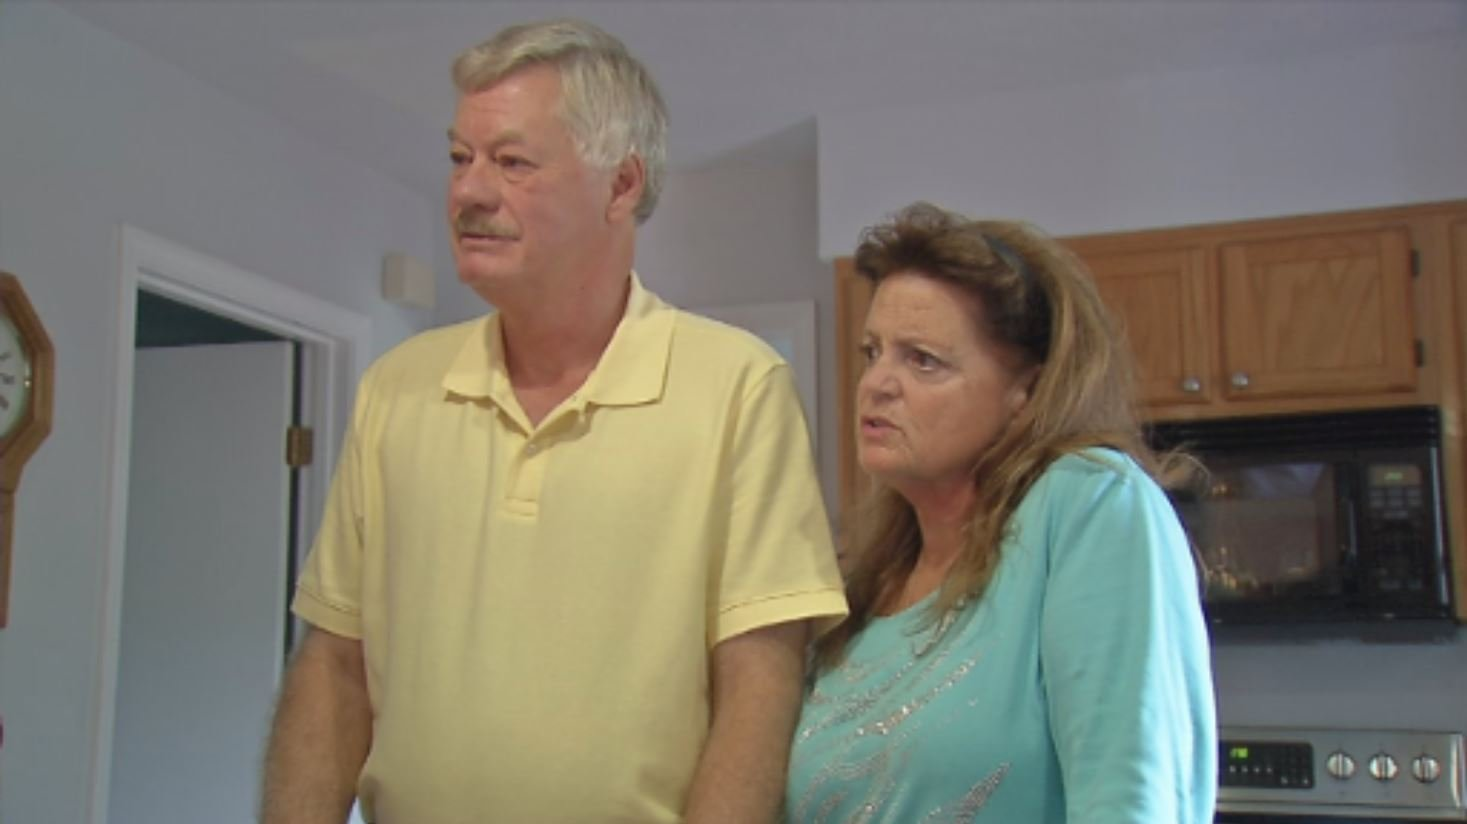 General Electric retiree Wayne Gunnell and his wife, Lou, at their home in Eminence, Ky.